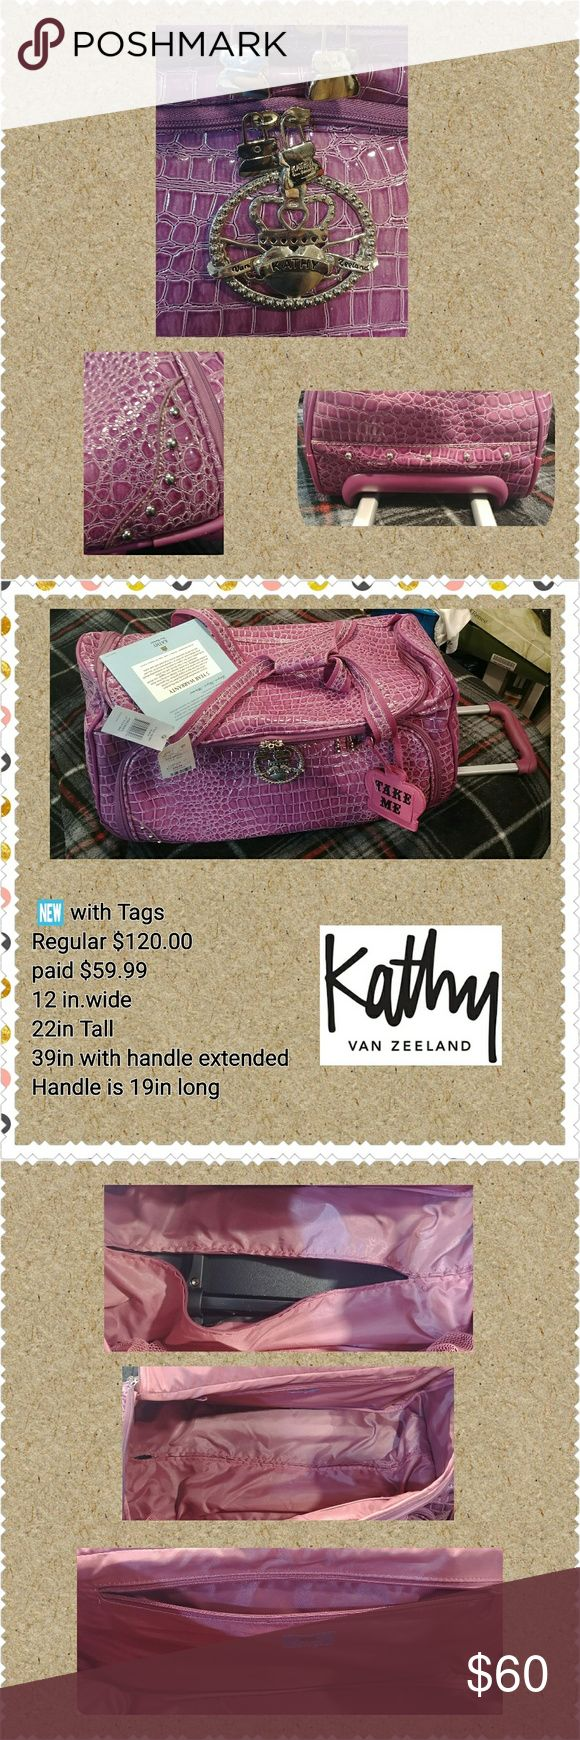 🌸🆕 WT!! KATHY BAN ZEELAND🌸 ⏪Travelware Luggage Bag ⏪Never used ⏪2.5 Gusset Expansion ⏪ 25% additional packing capacity ⏪Exquisite Attention to Detail  Serious Buyers, Send your best offer. No LOW Balling, Please. Thanks Kathy Van Zeeland Other